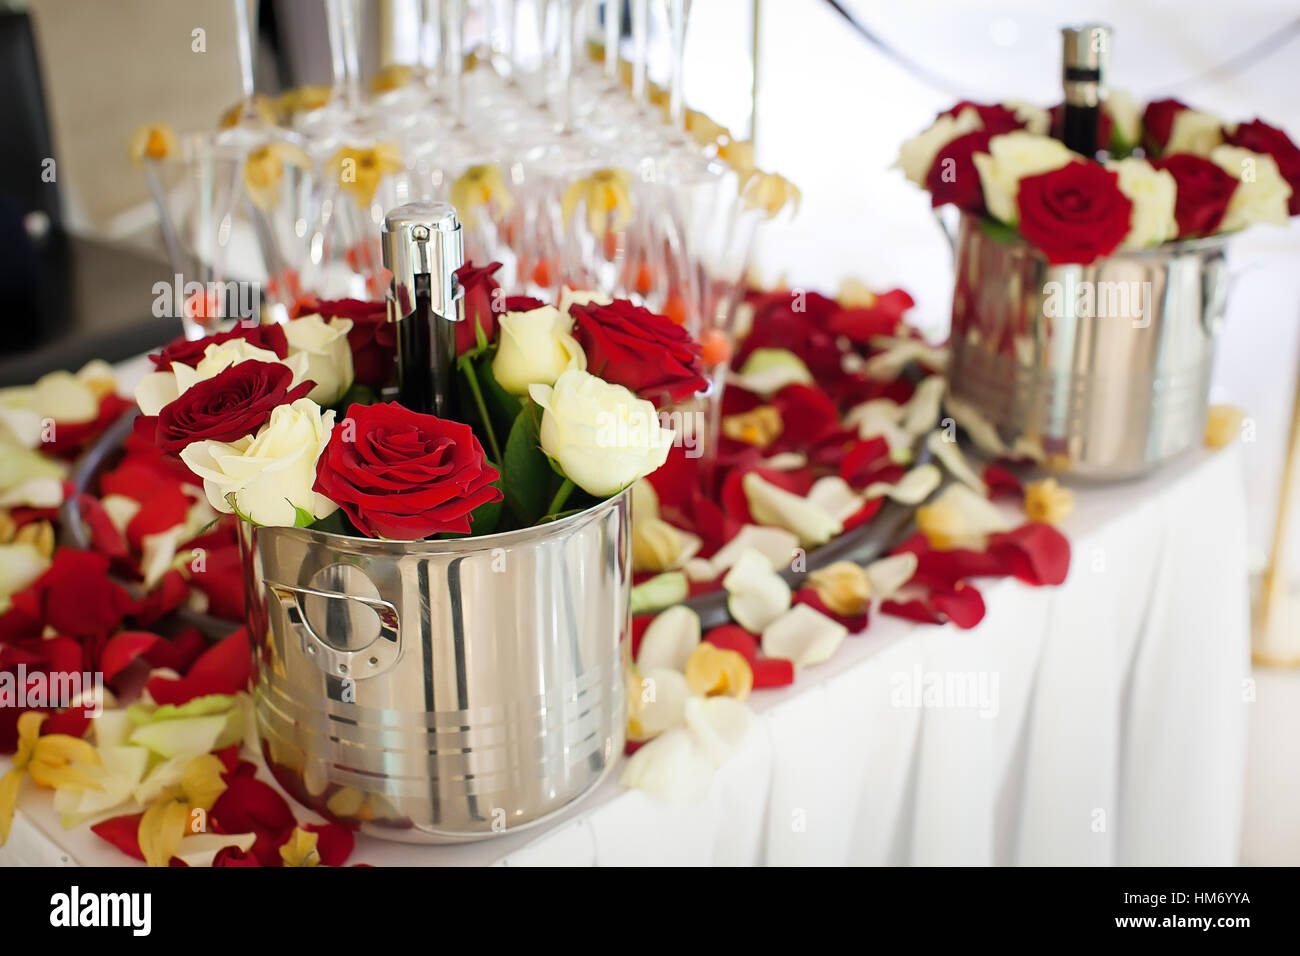 Rose Petals In Wine Glass Stock Photos & Rose Petals In Wine Glass ...